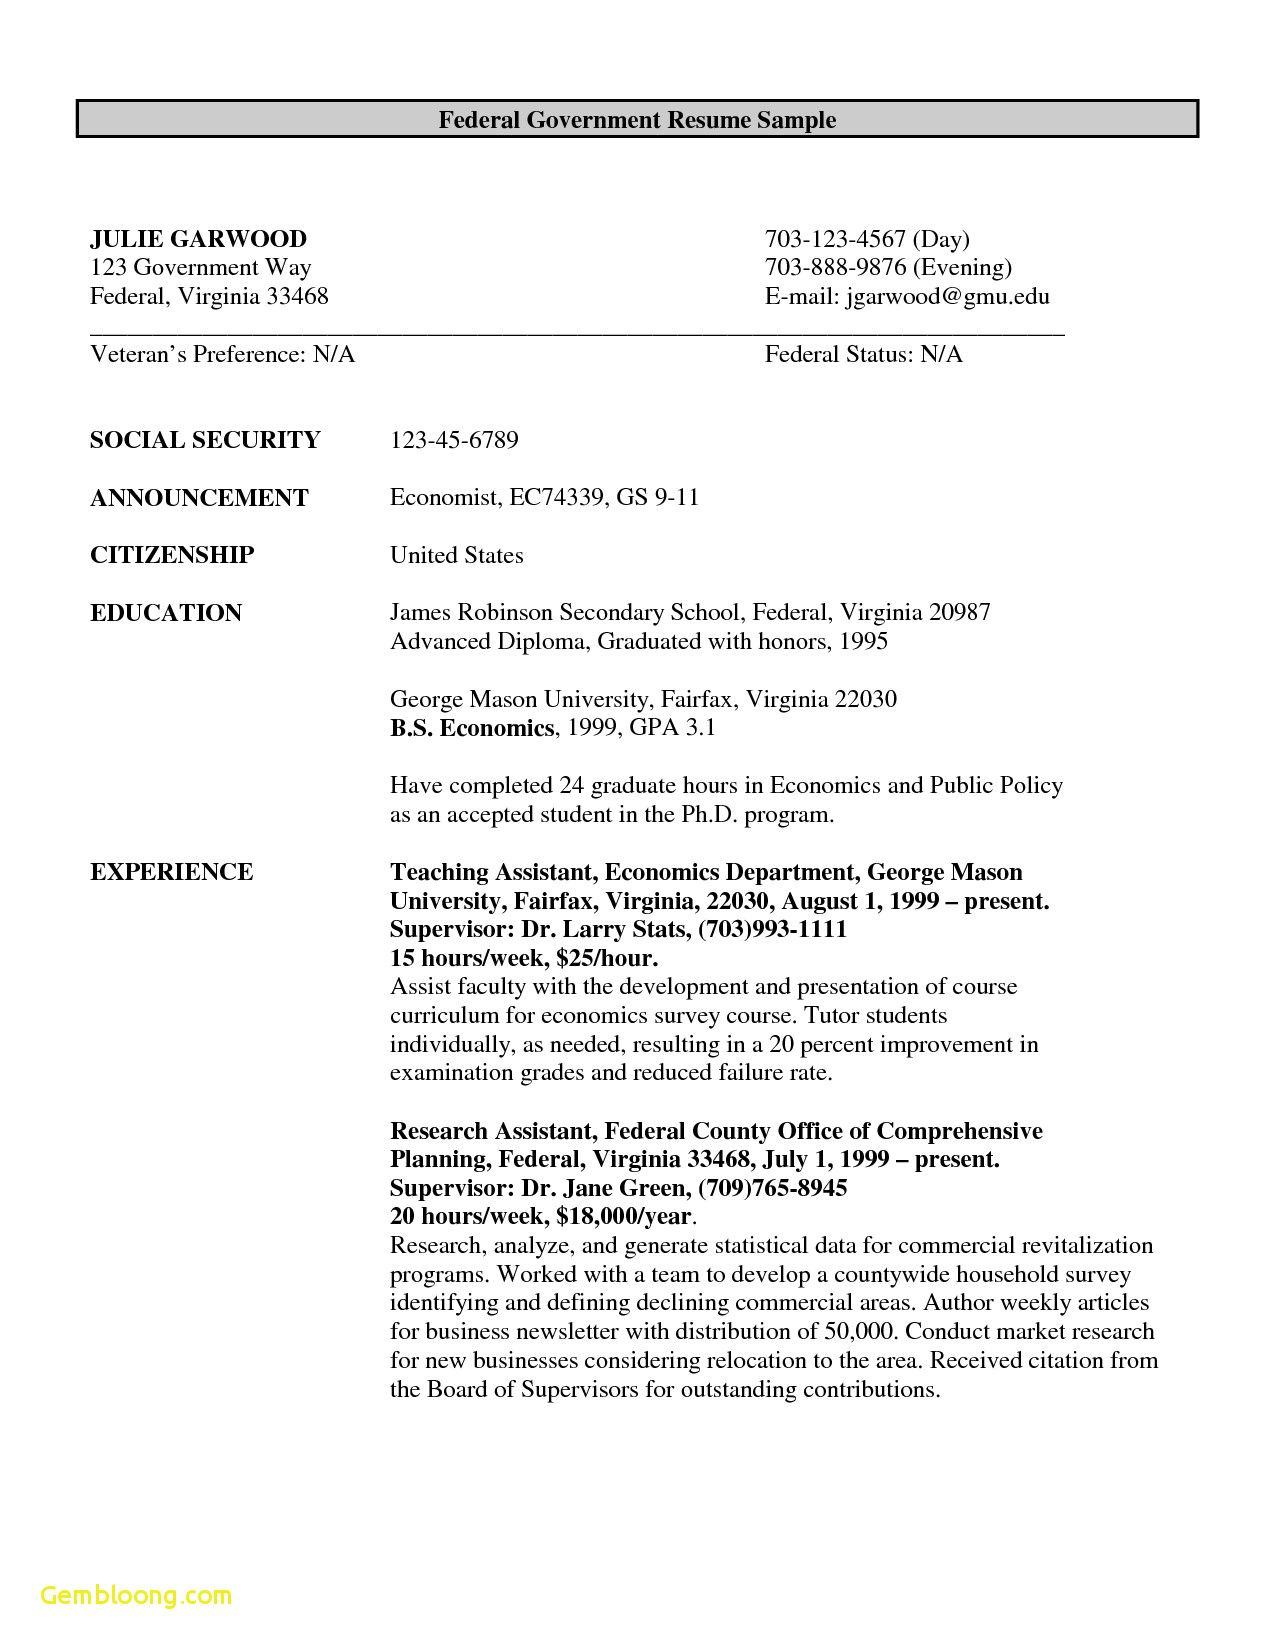 Free resume templates government job resume examples